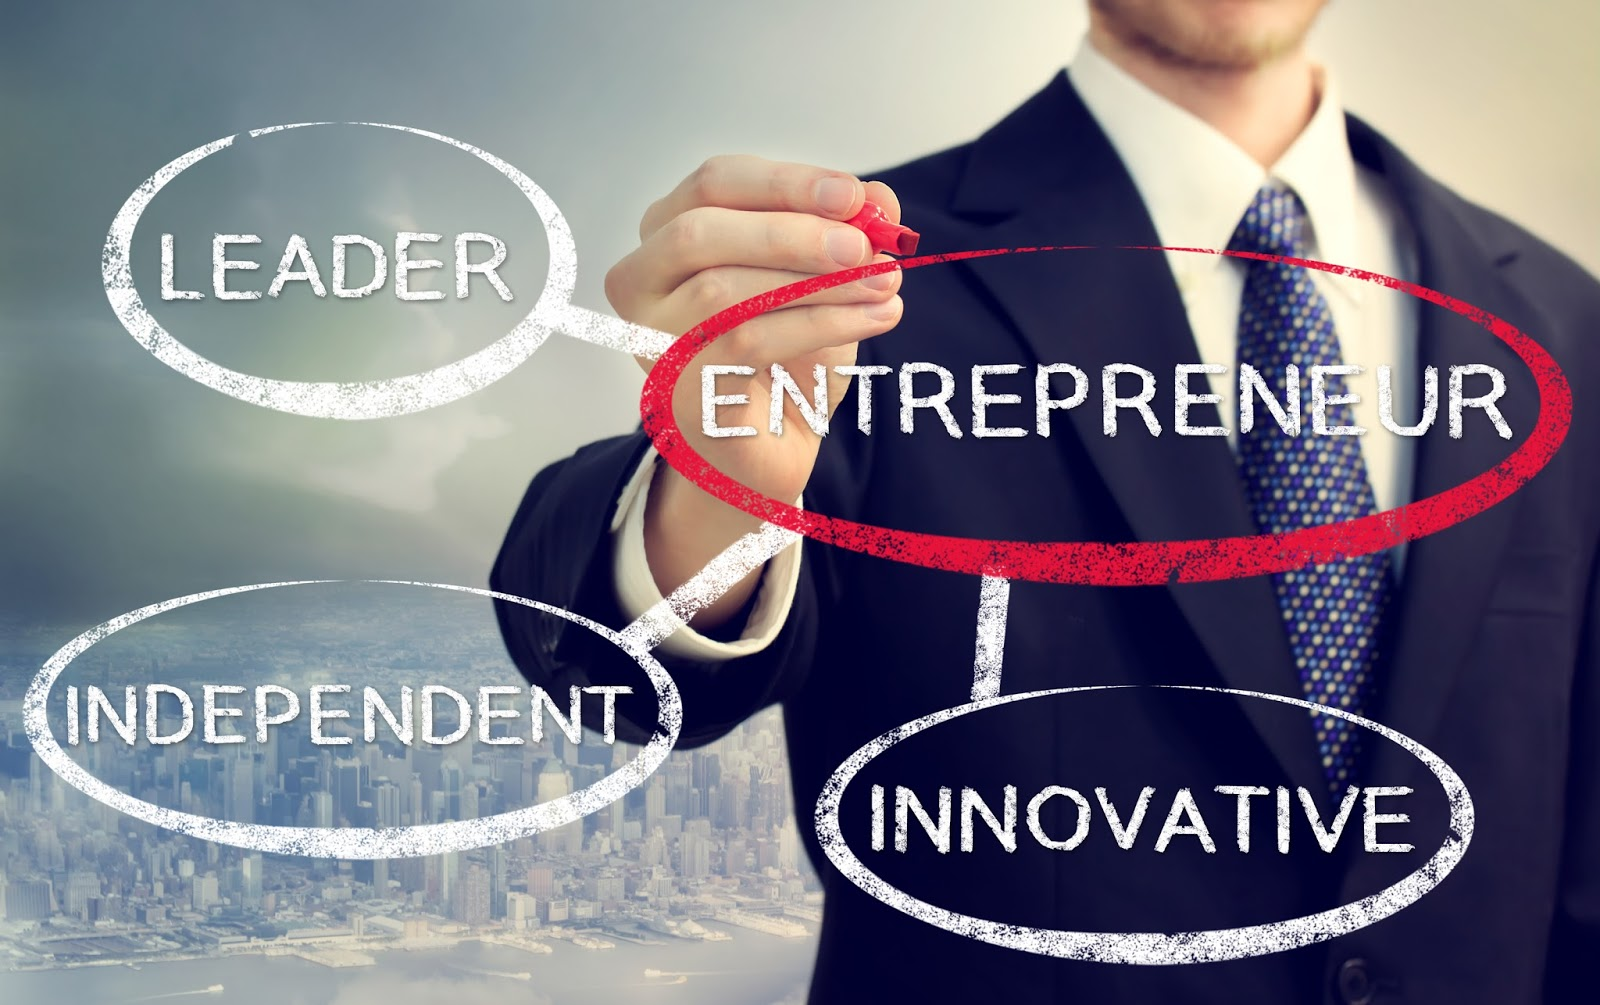 The Entrepreneur Test | Am I Entrepreneur? Entrepreneurship Quiz